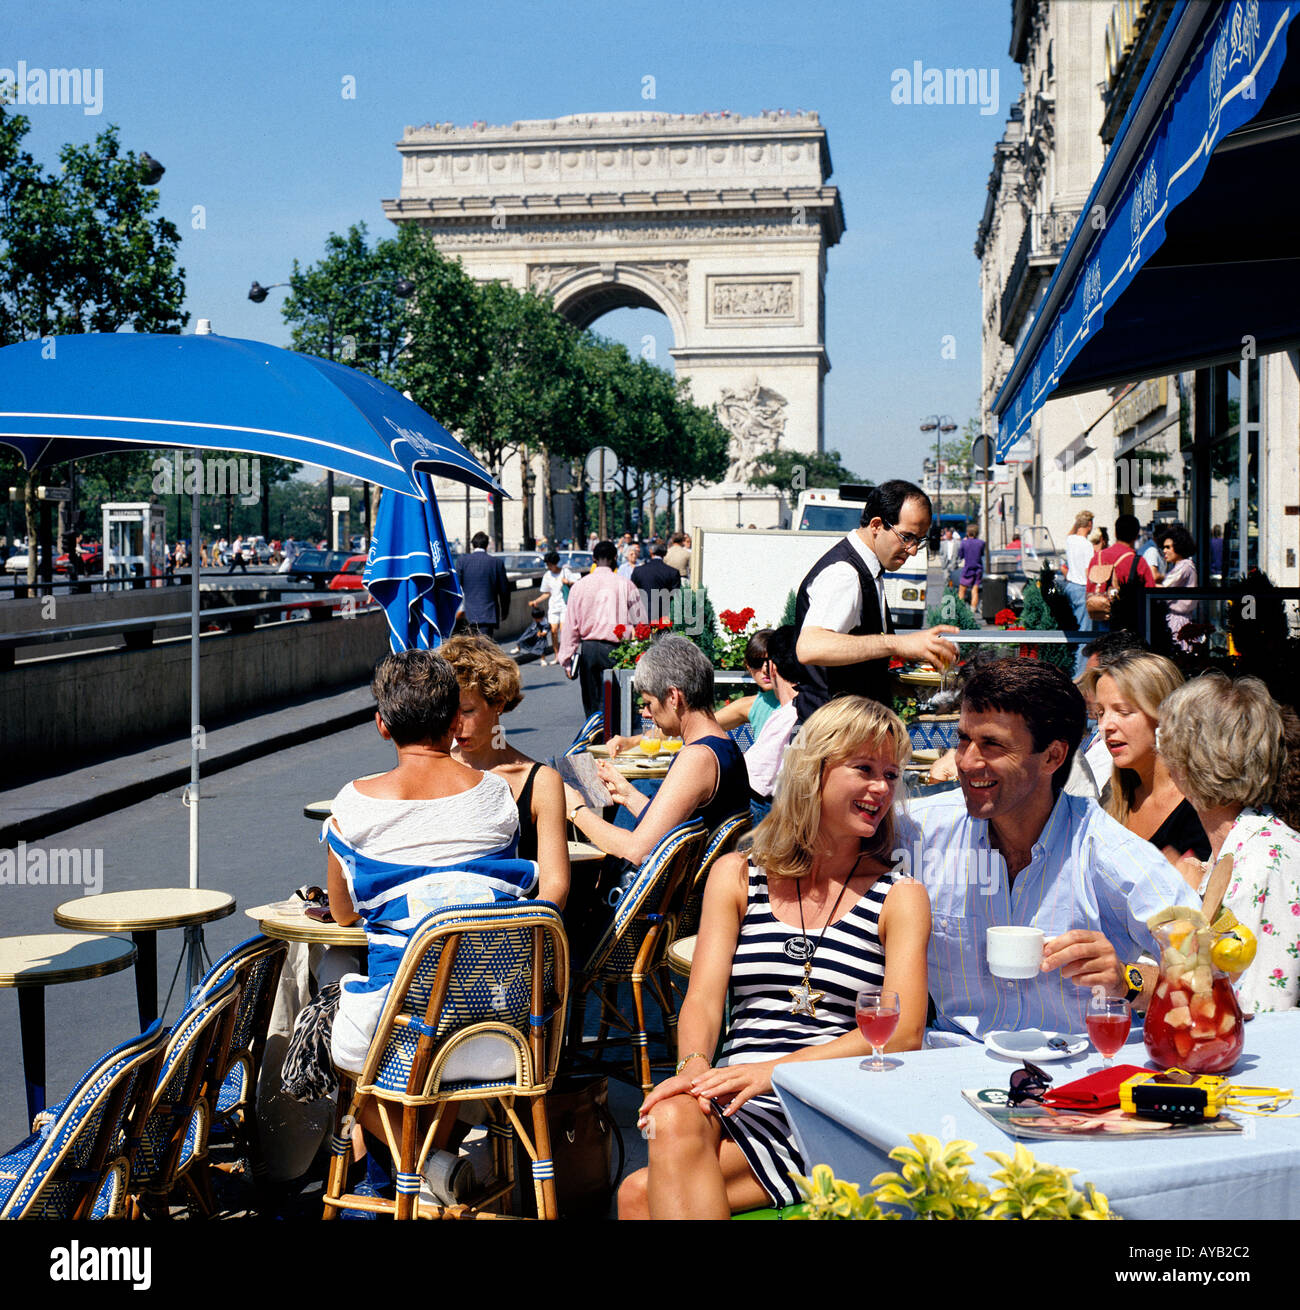 Parisien Cafe scene on the Champs Elysees  near the Arc de Triomphe - Stock Image